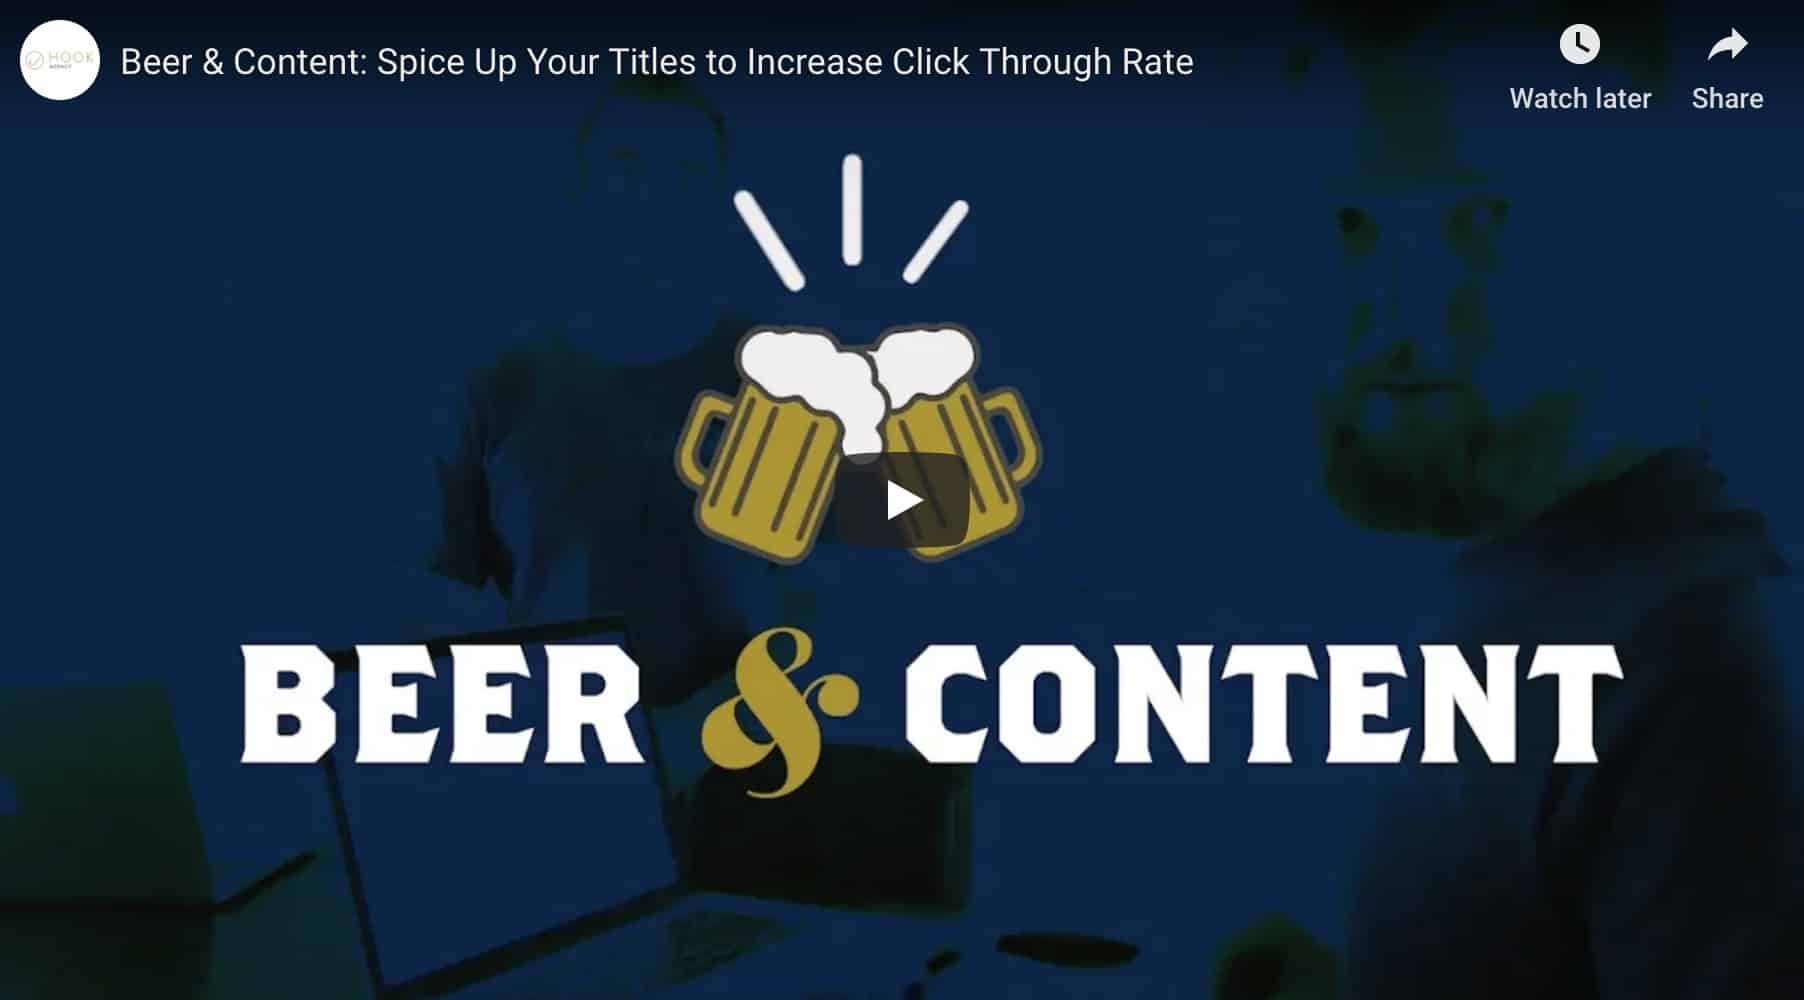 Beer and Content Strategy - LinkedIn Lead Generation